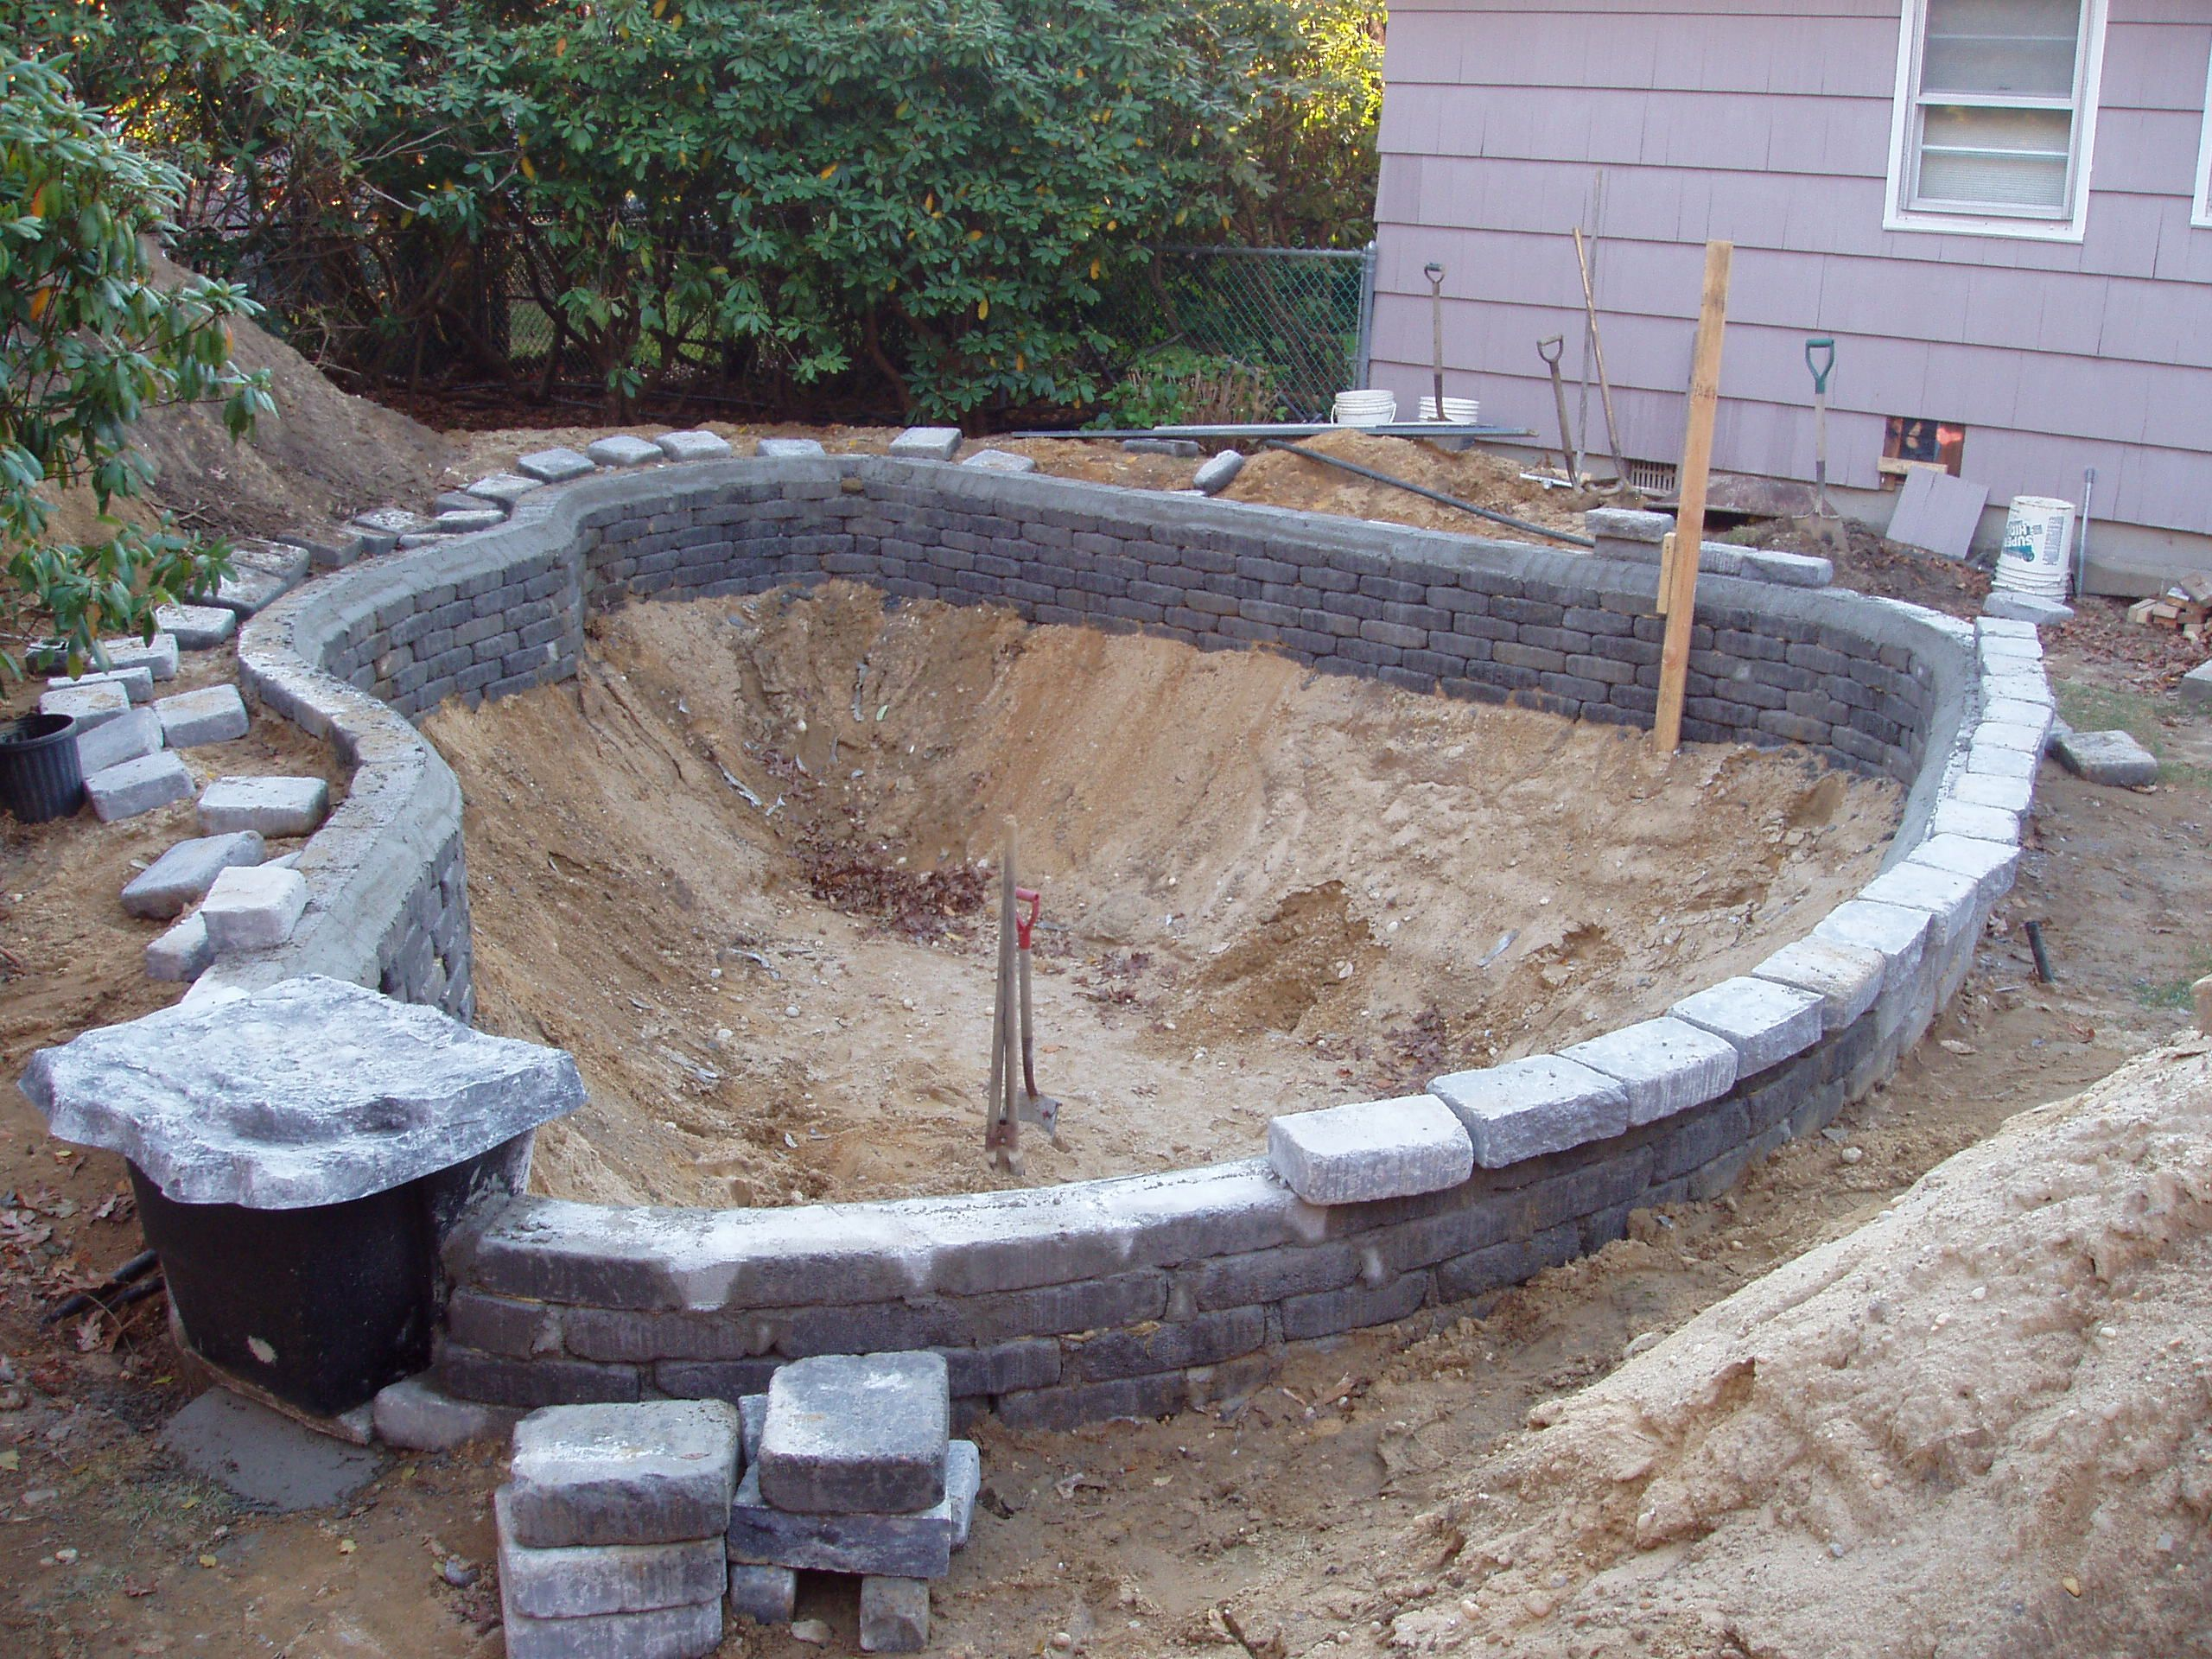 Pond design and construction google search aquaponics for Garden fish pond ideas